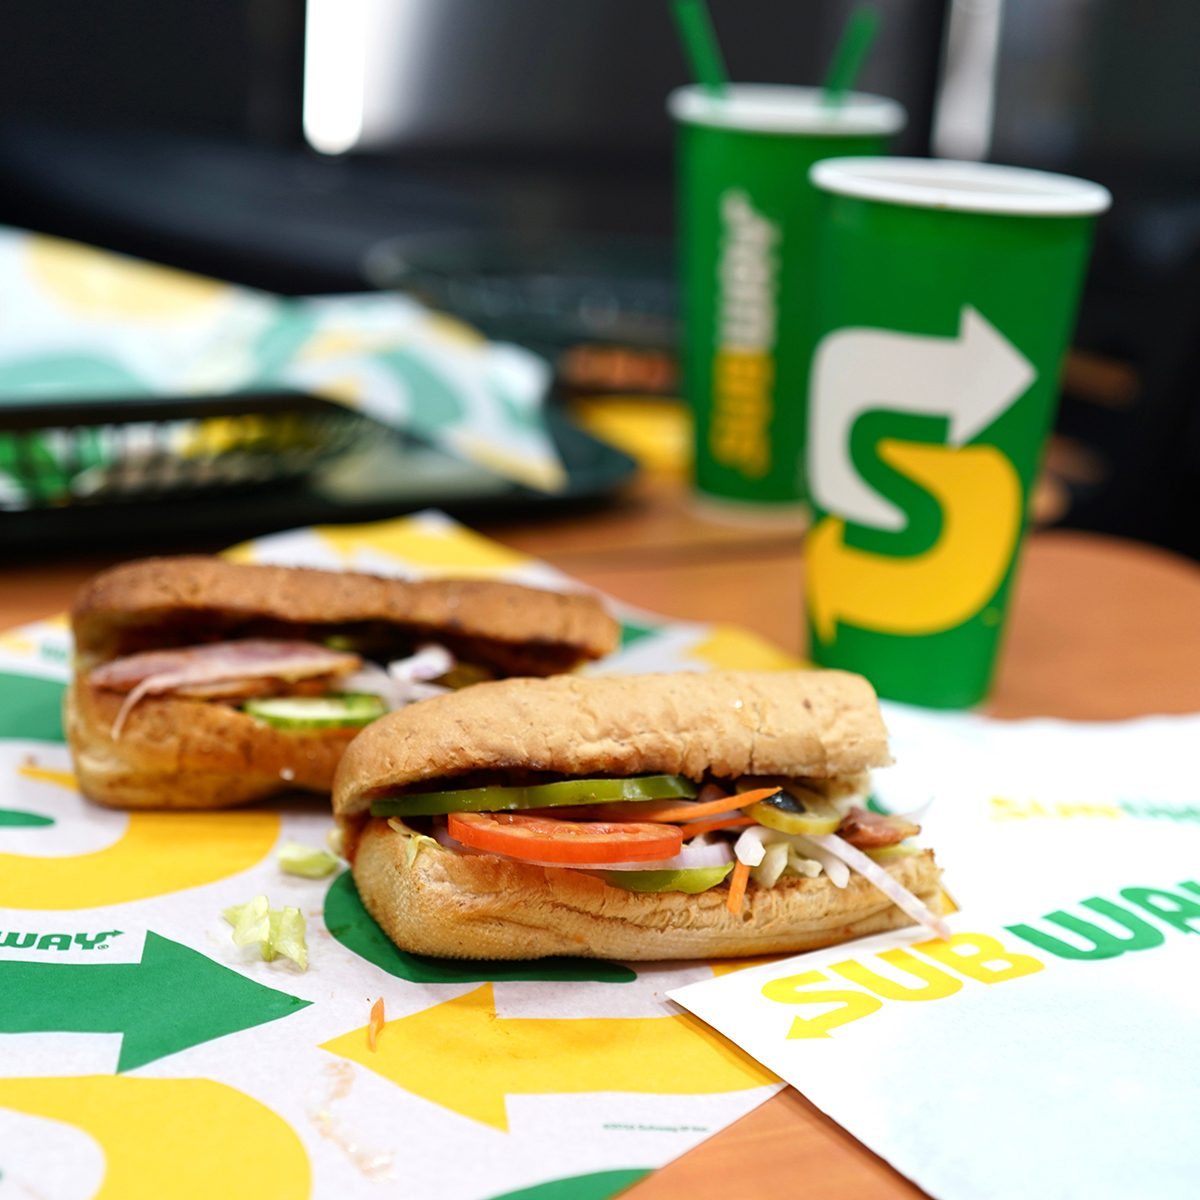 Subway sandwich meal and drinks